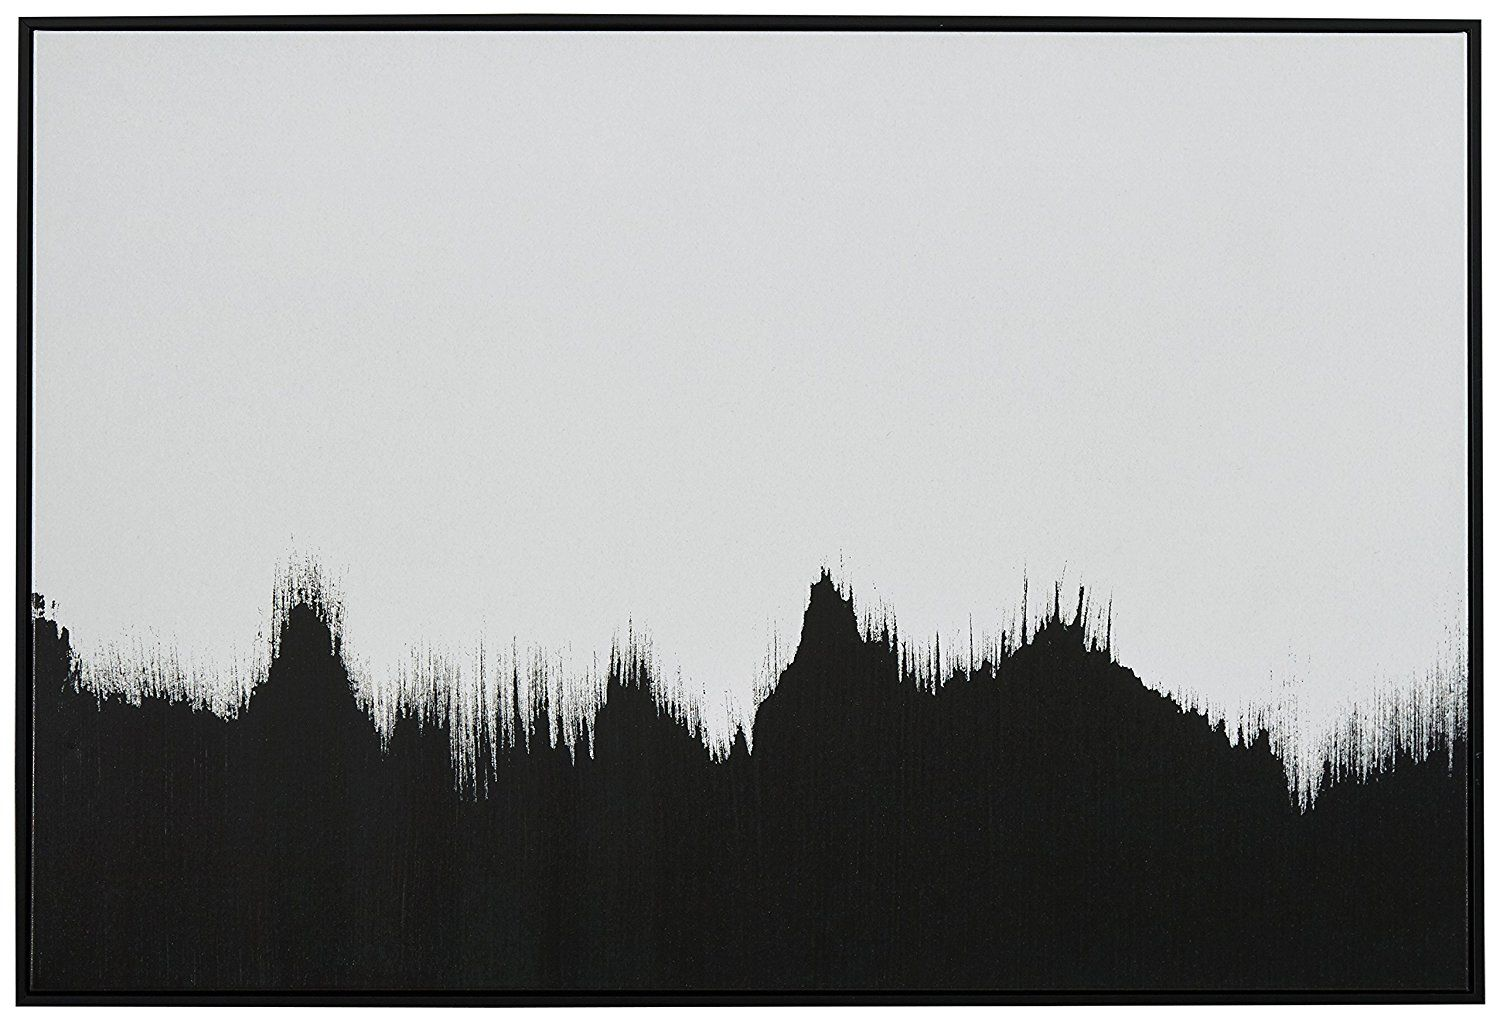 Amazon.com: Abstract Black and White Print of Tree Line in Black ...